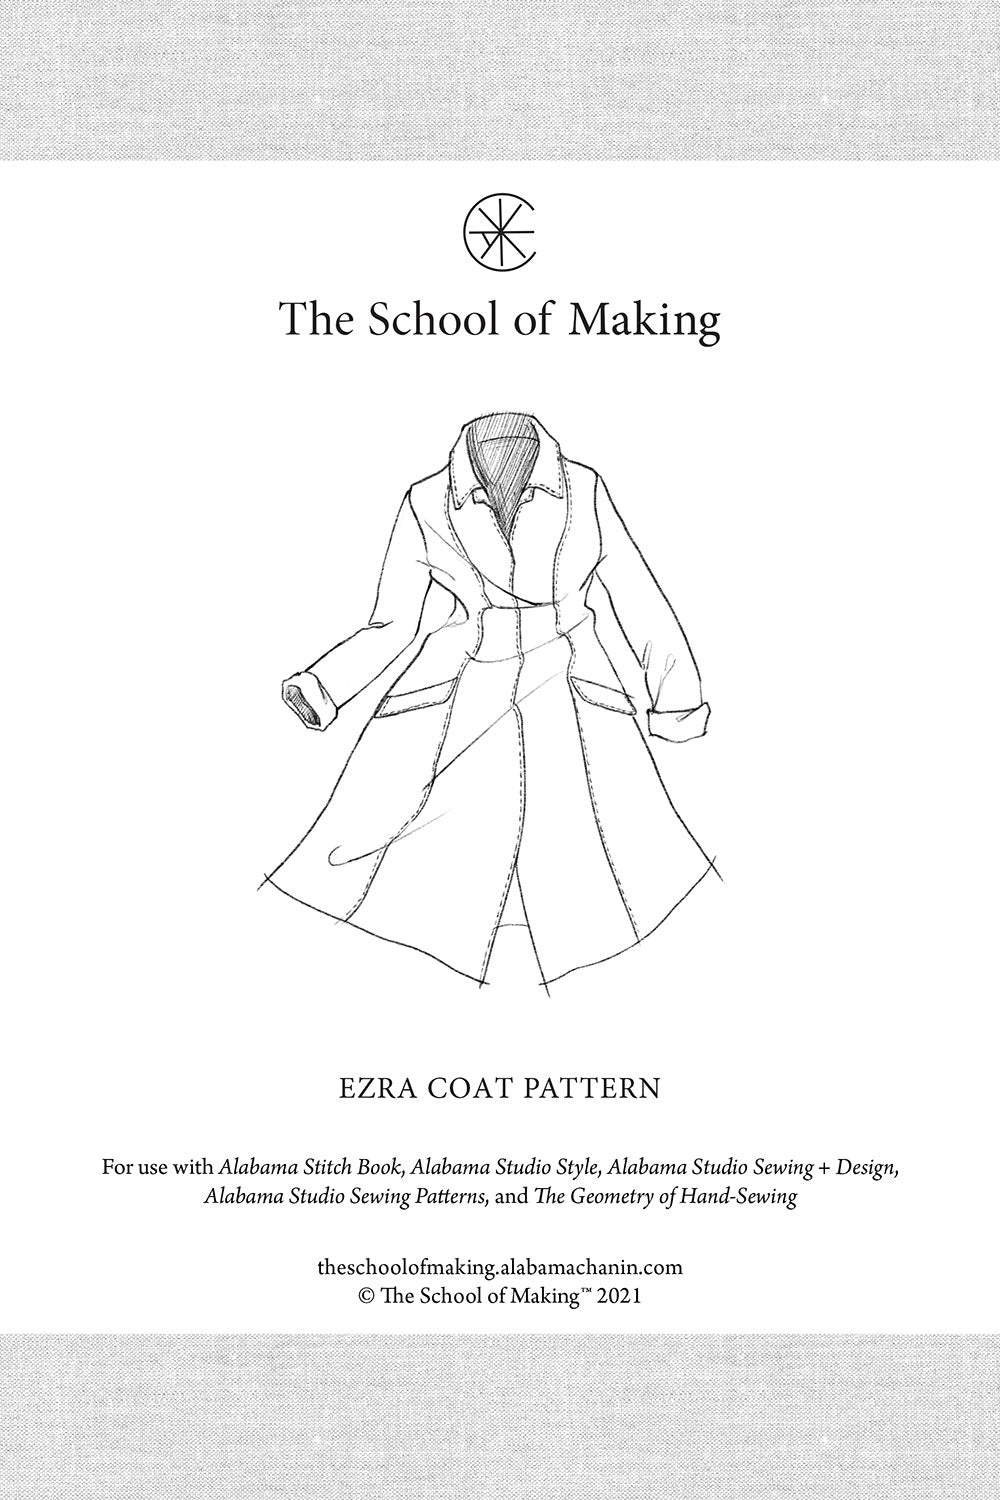 The School of Making Ezra Coat Pattern Maker Supplies for Hand-Sewing